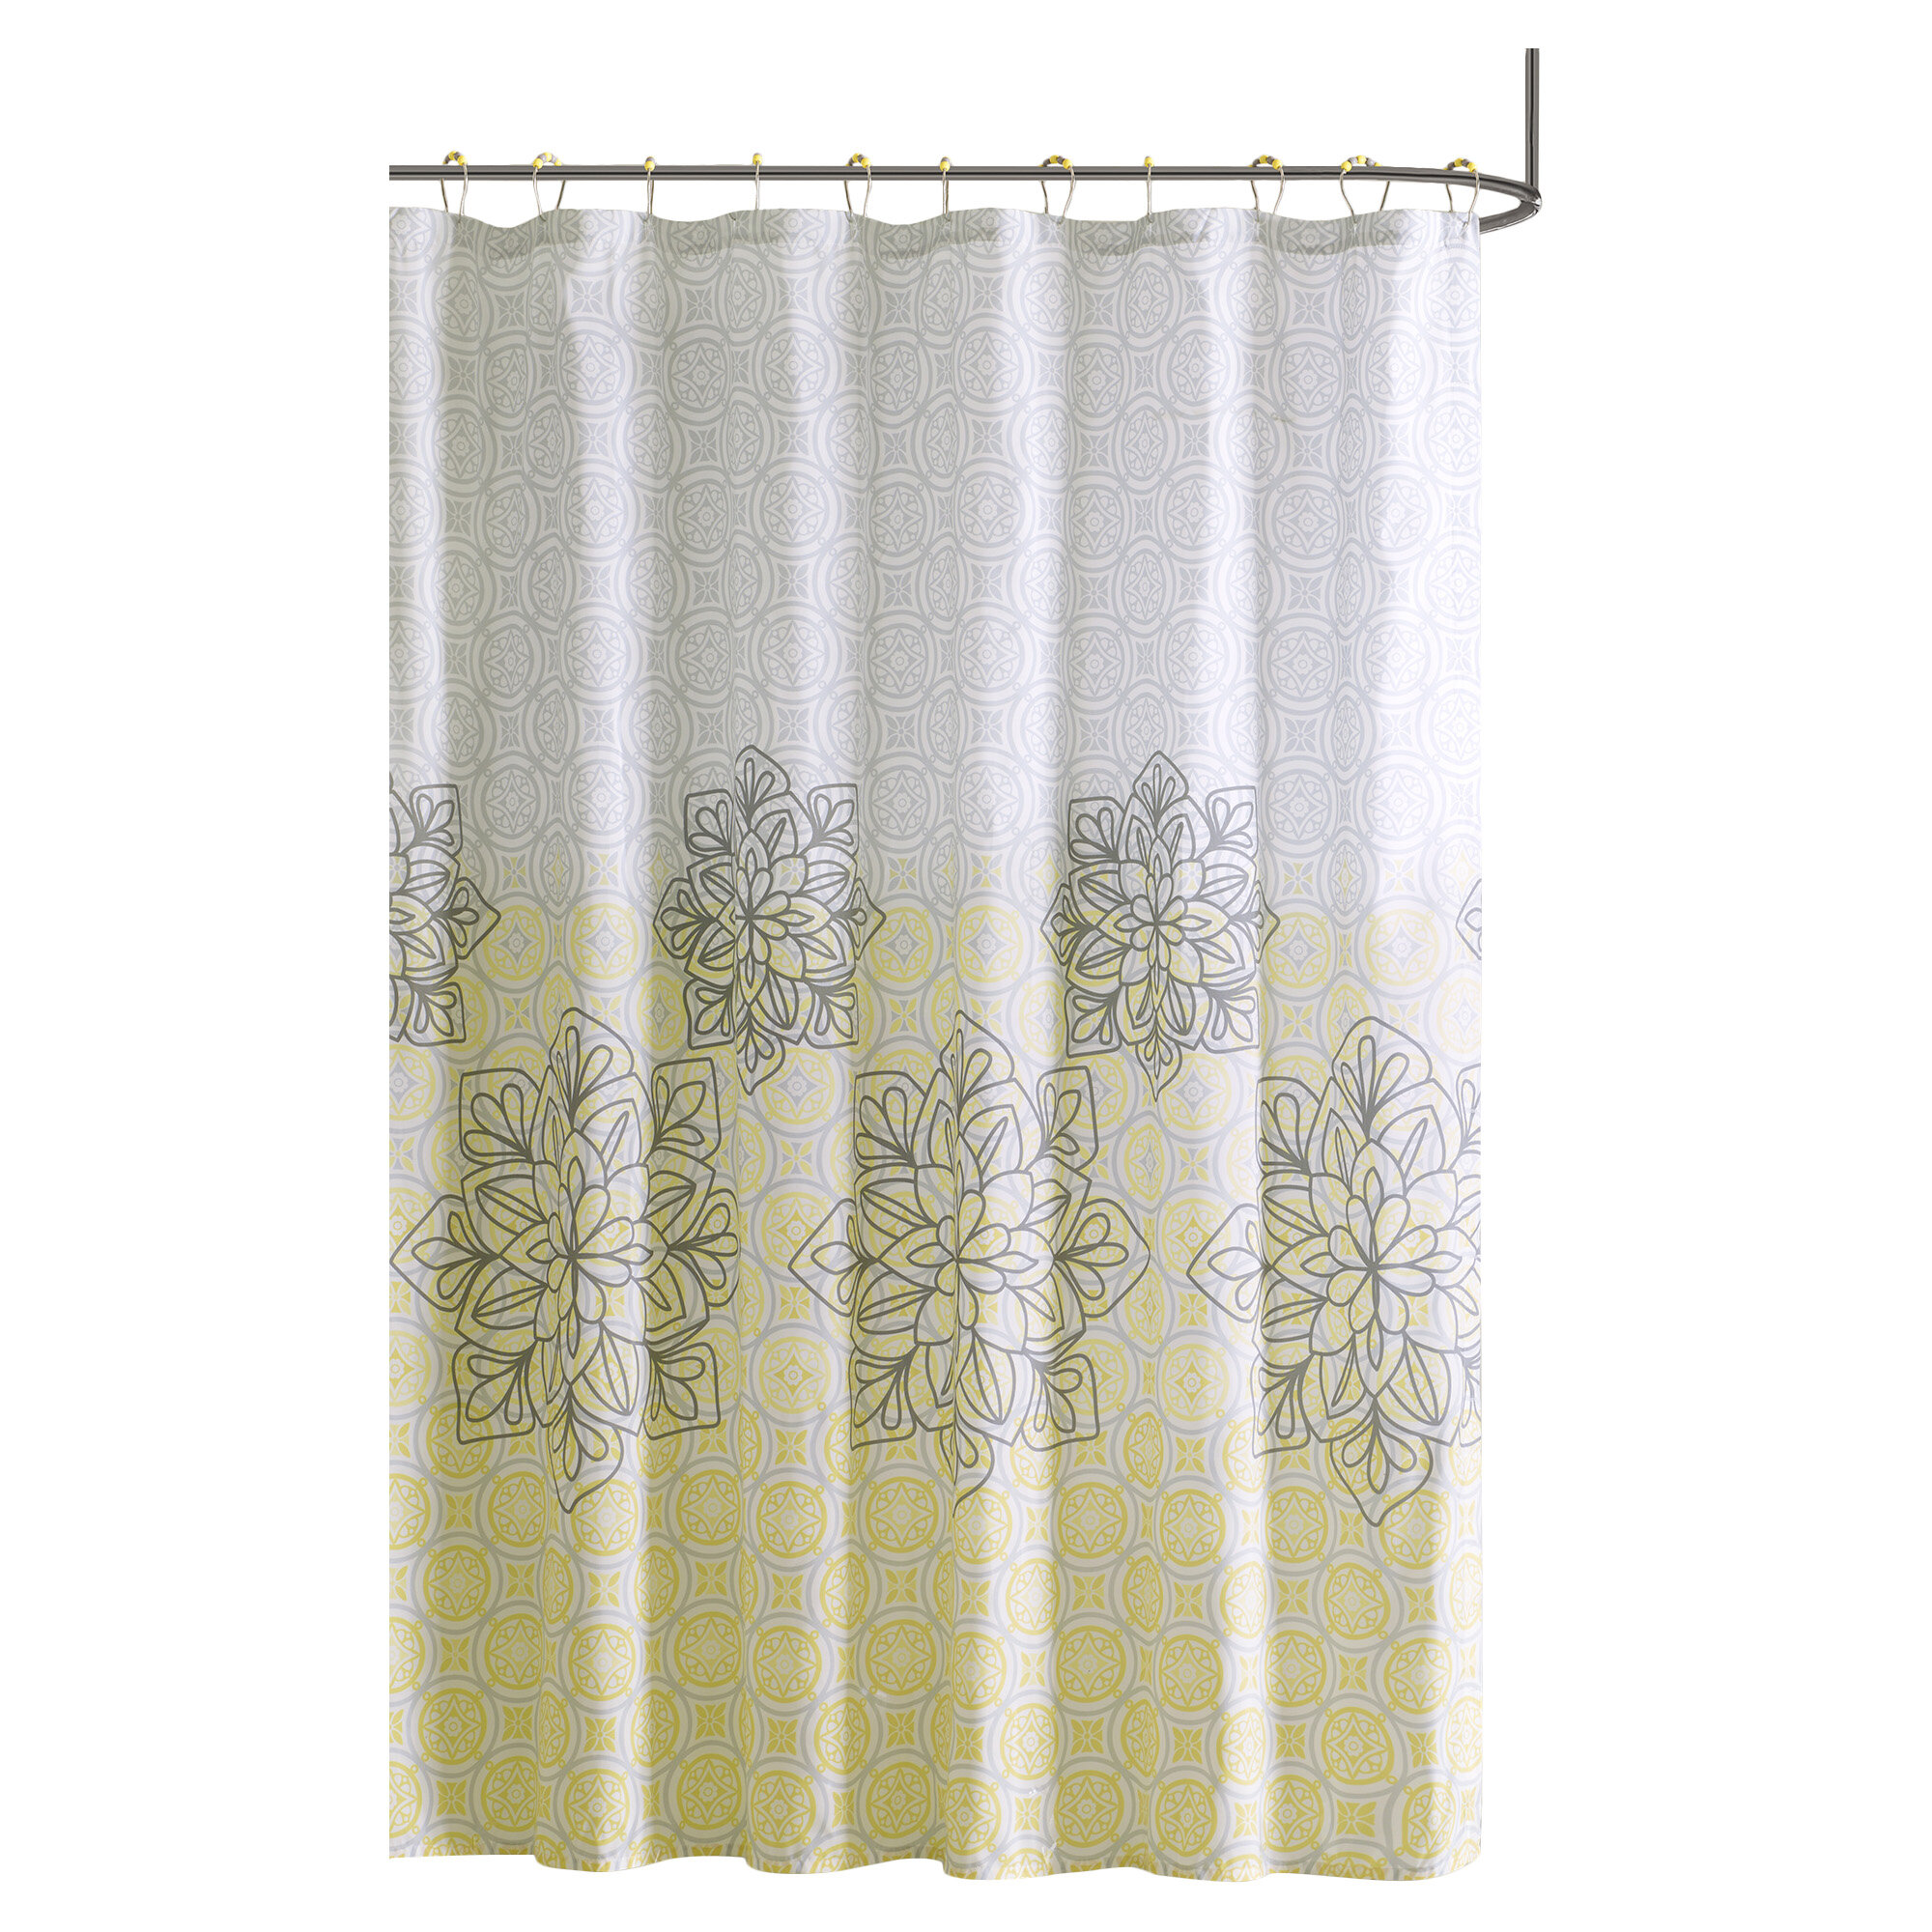 curtain lighthouse size full curtains better sets tall gardens ideas bathroom marvelous walmart extraordinary and of decor homes essories com palm accessories shower